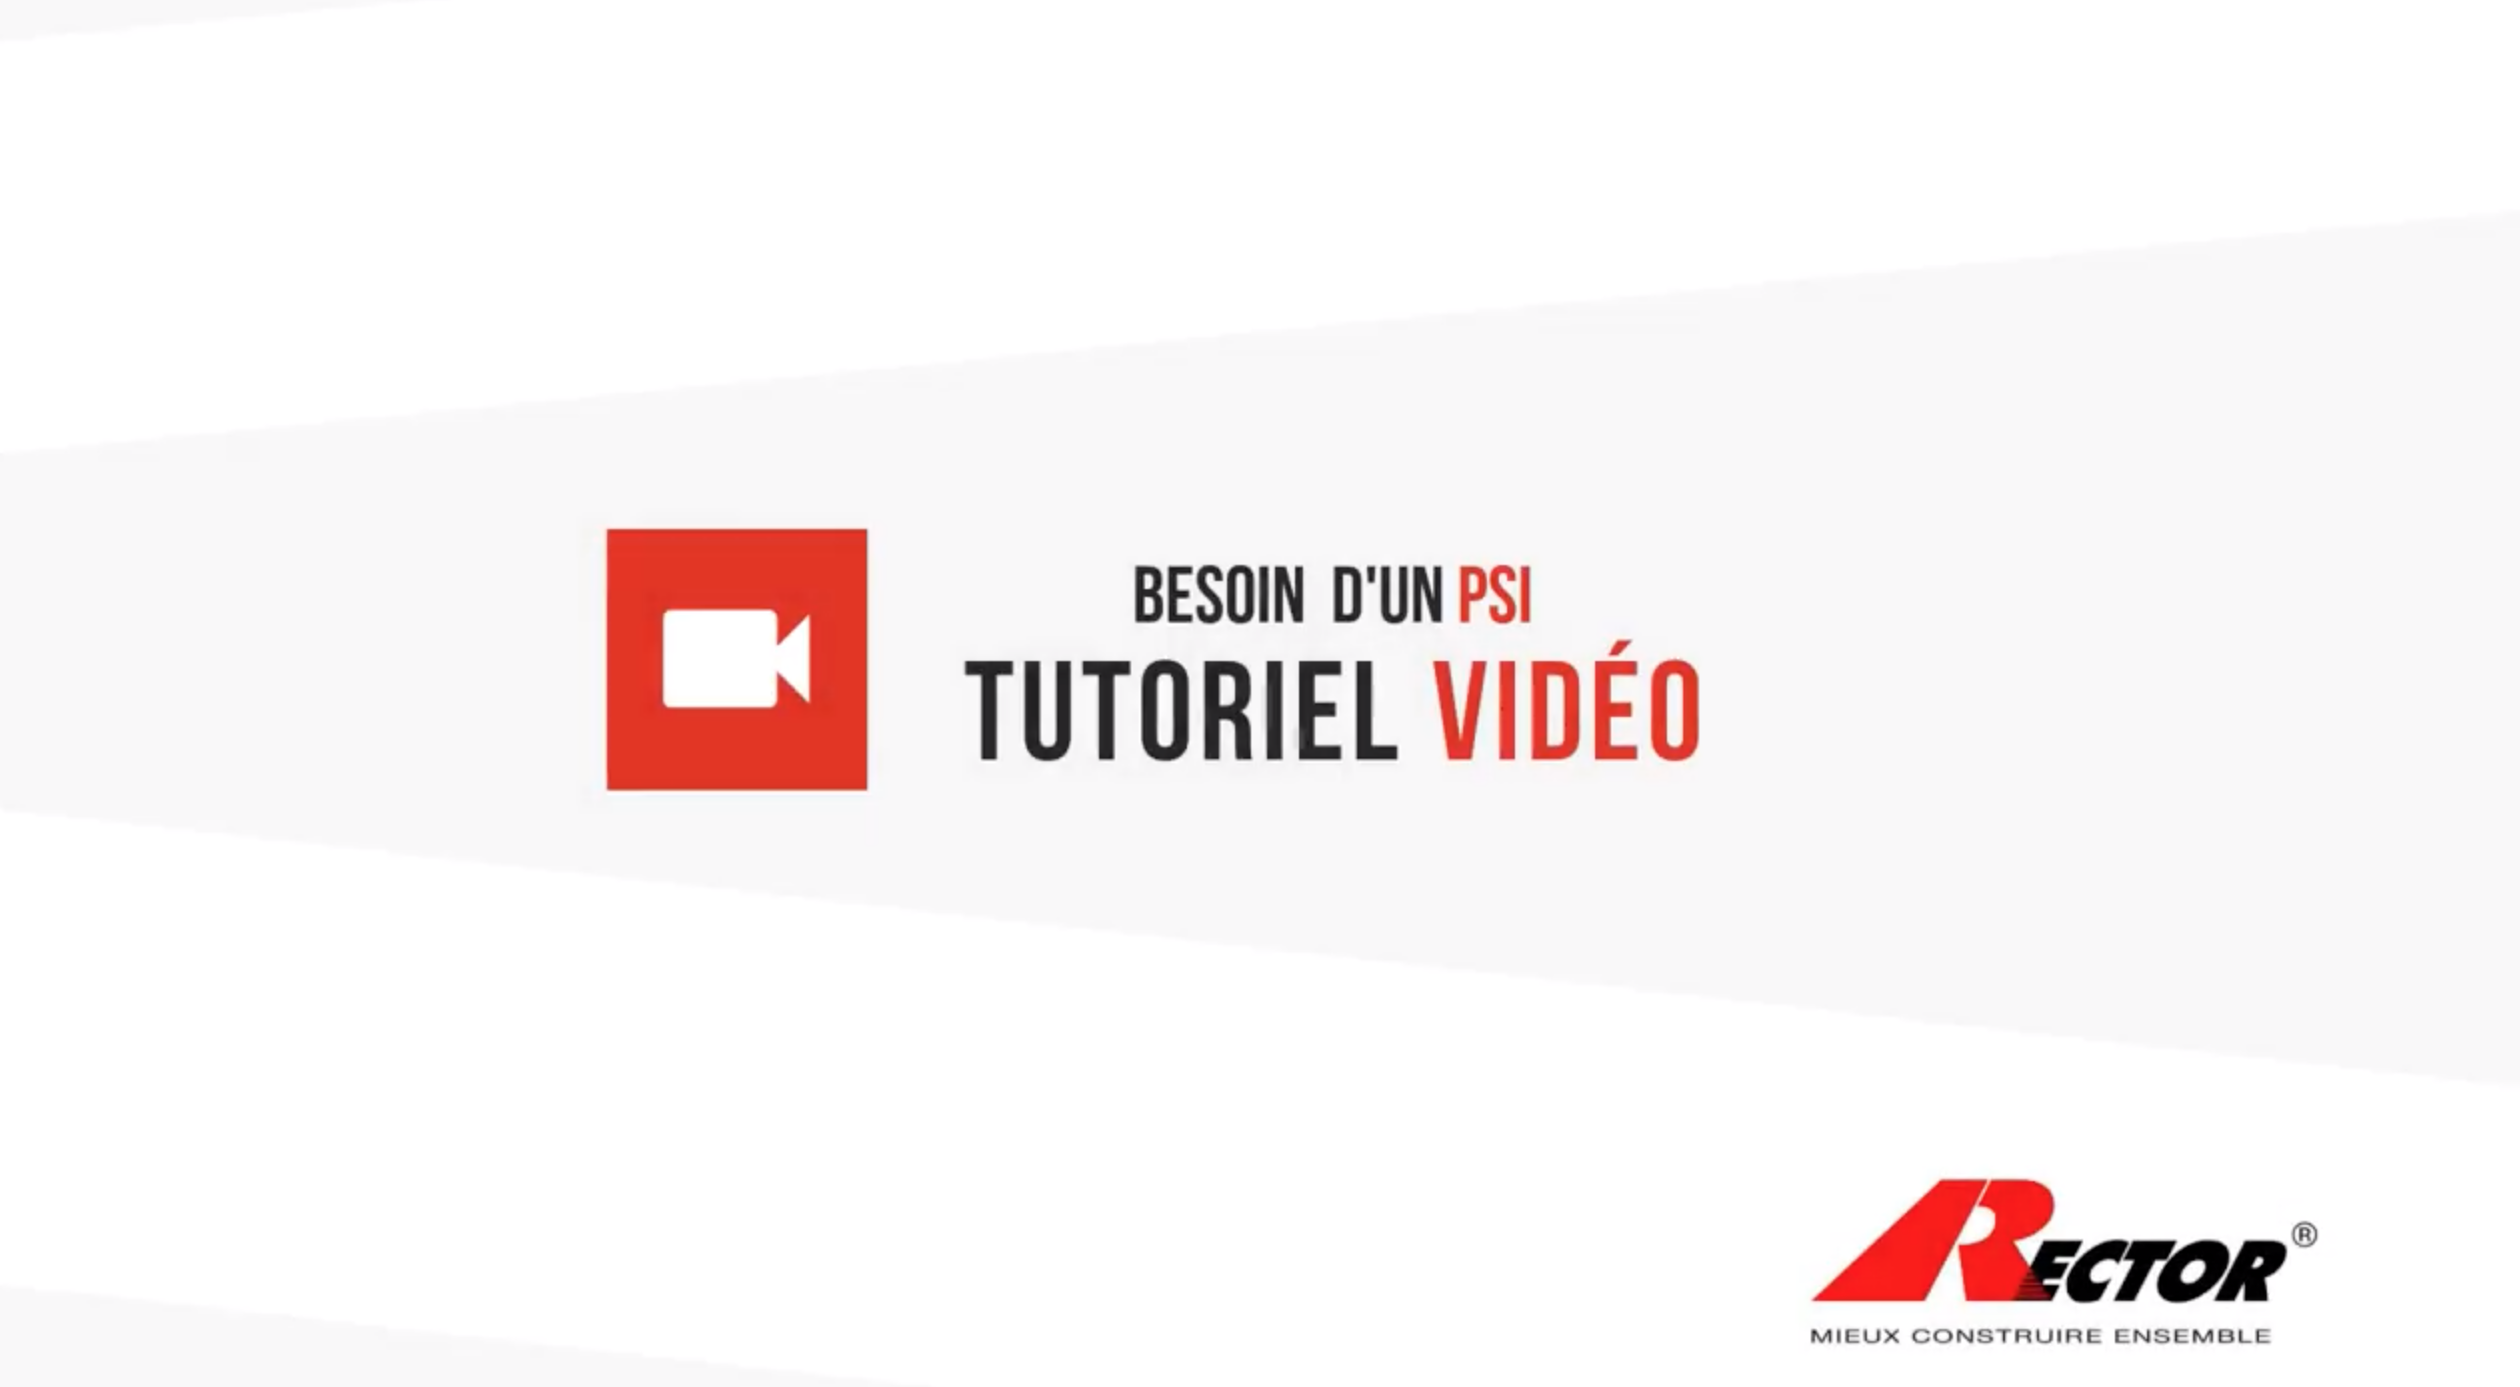 screenshot-tutoriel-besoin-d-un-psi-rector